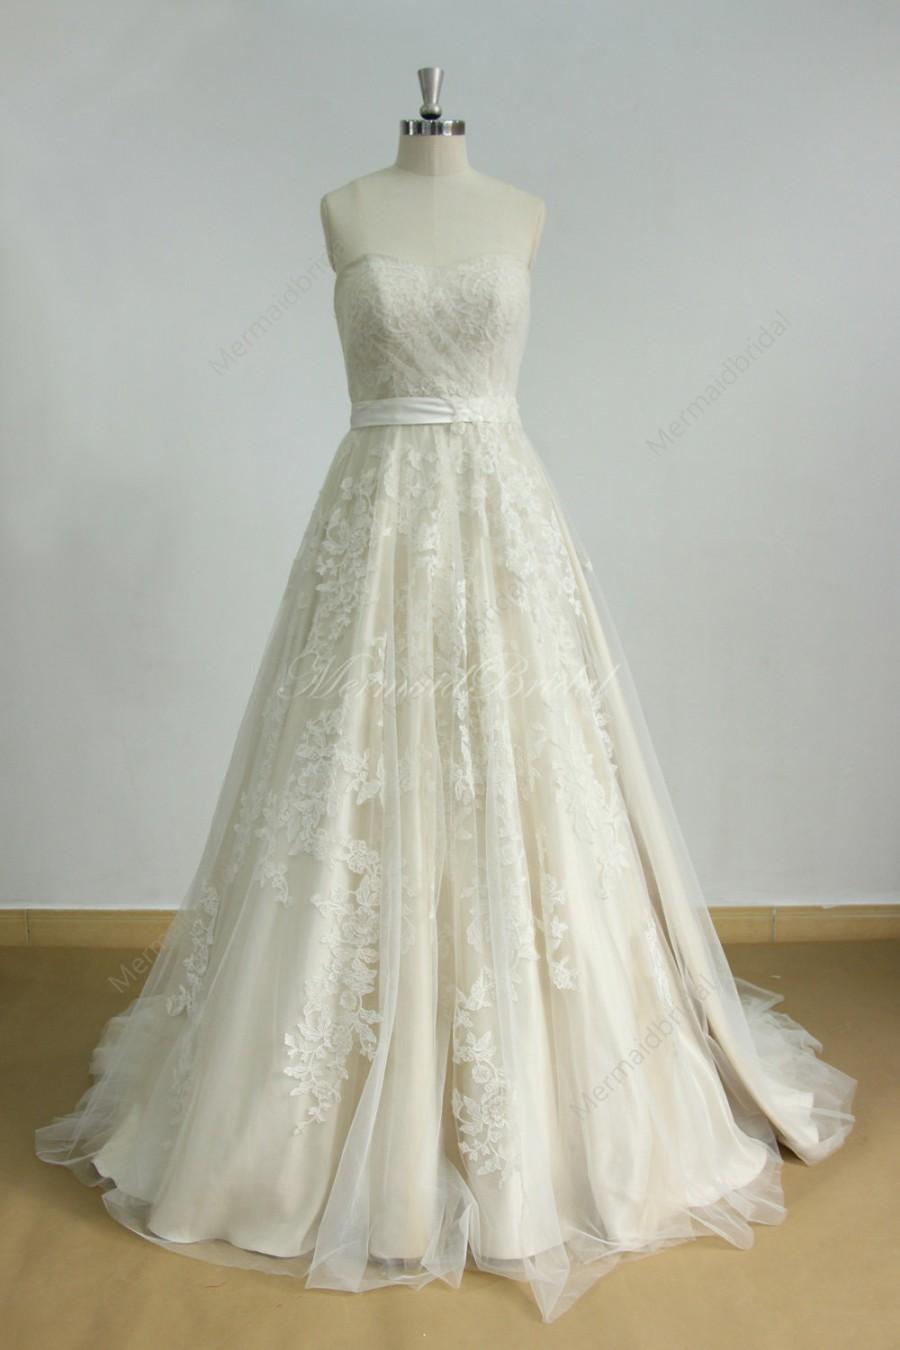 Mariage - Aline tulle lace wedding dress with light champagne lining